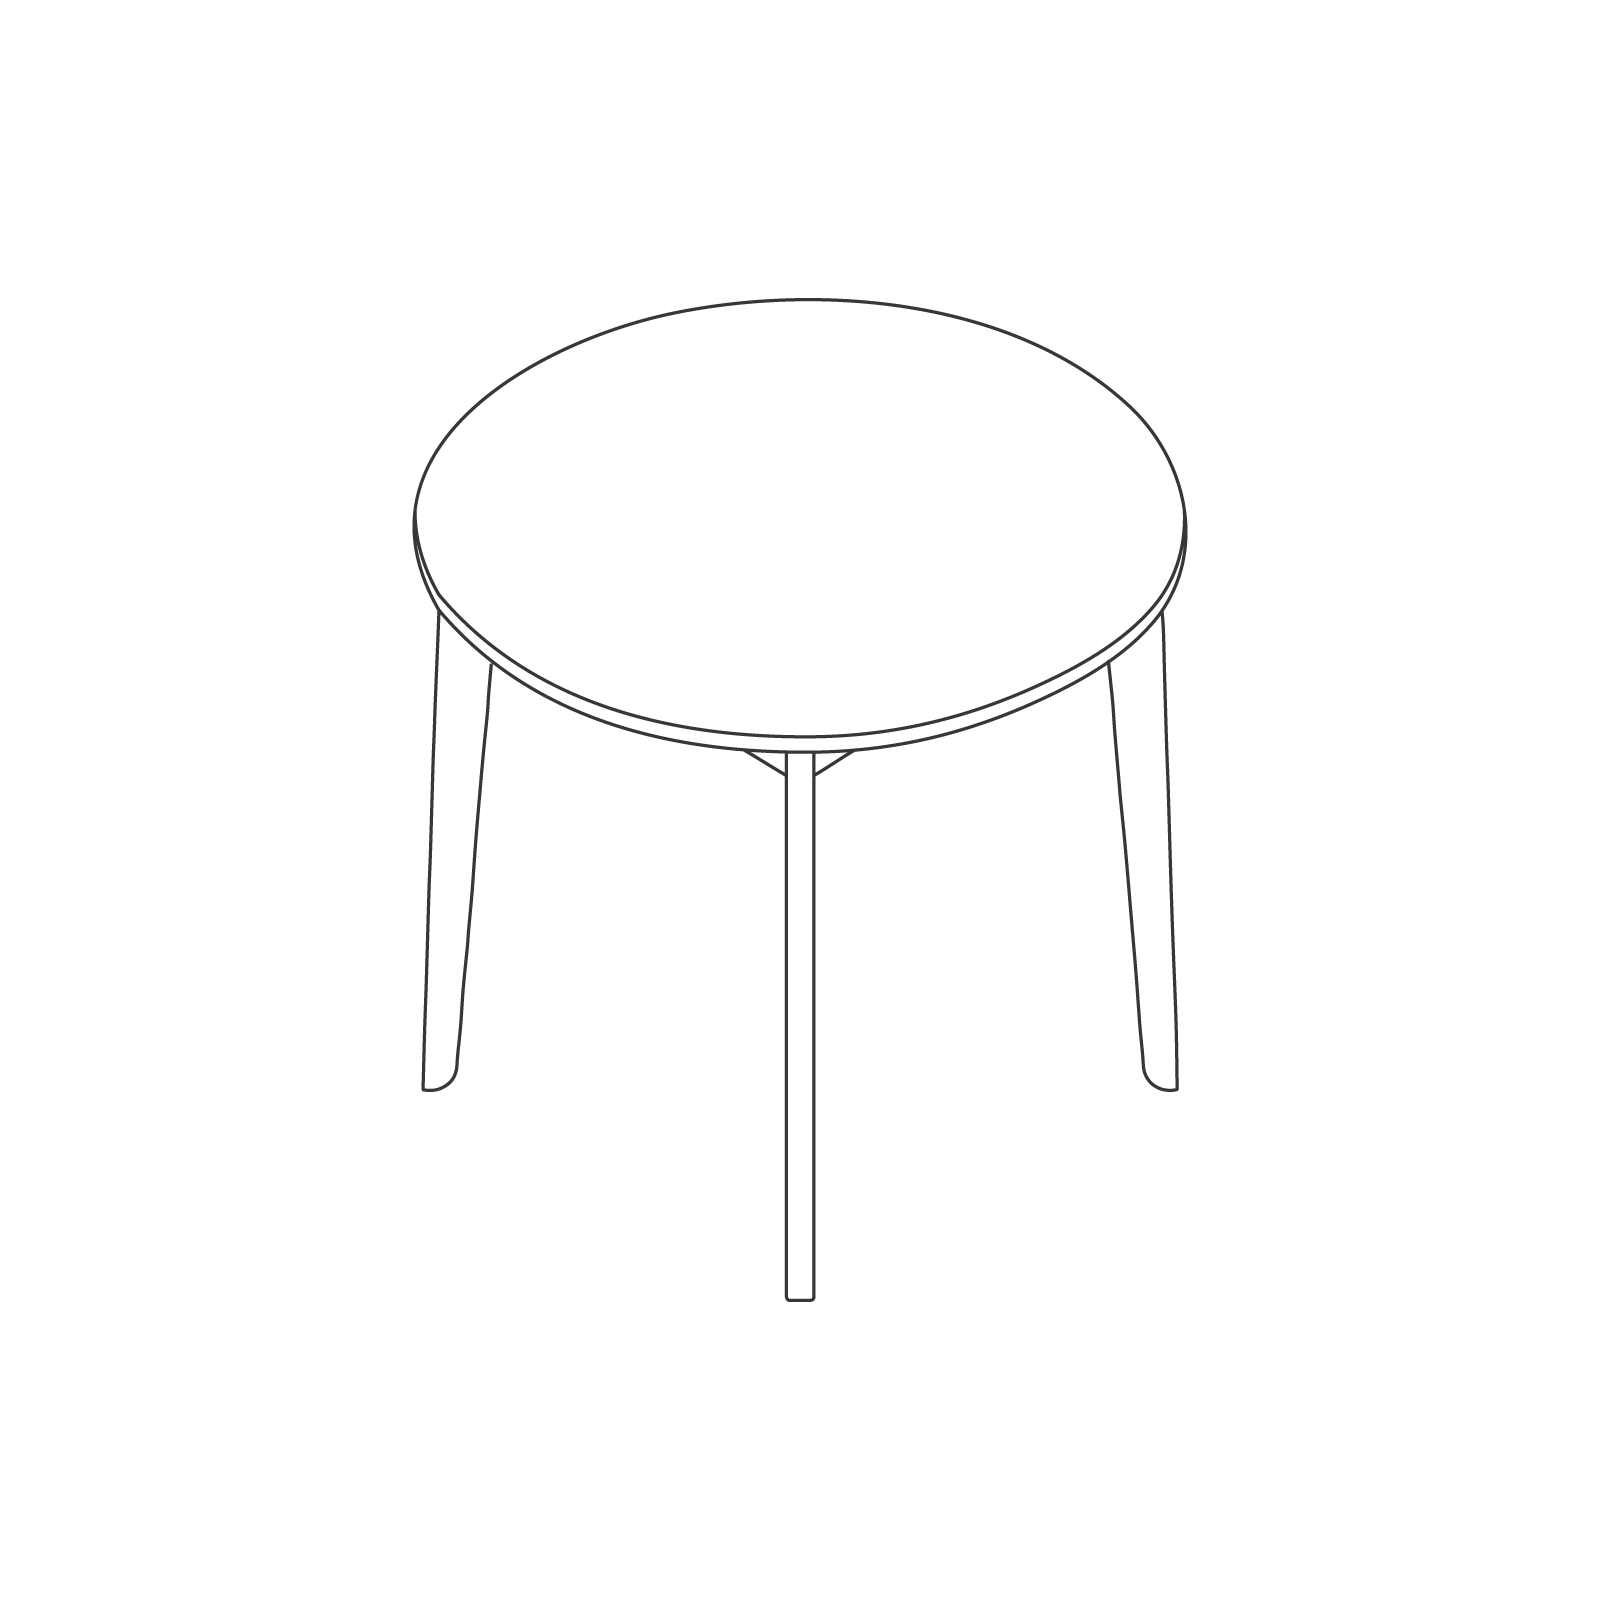 A line drawing of Dalby Café Table–Round.